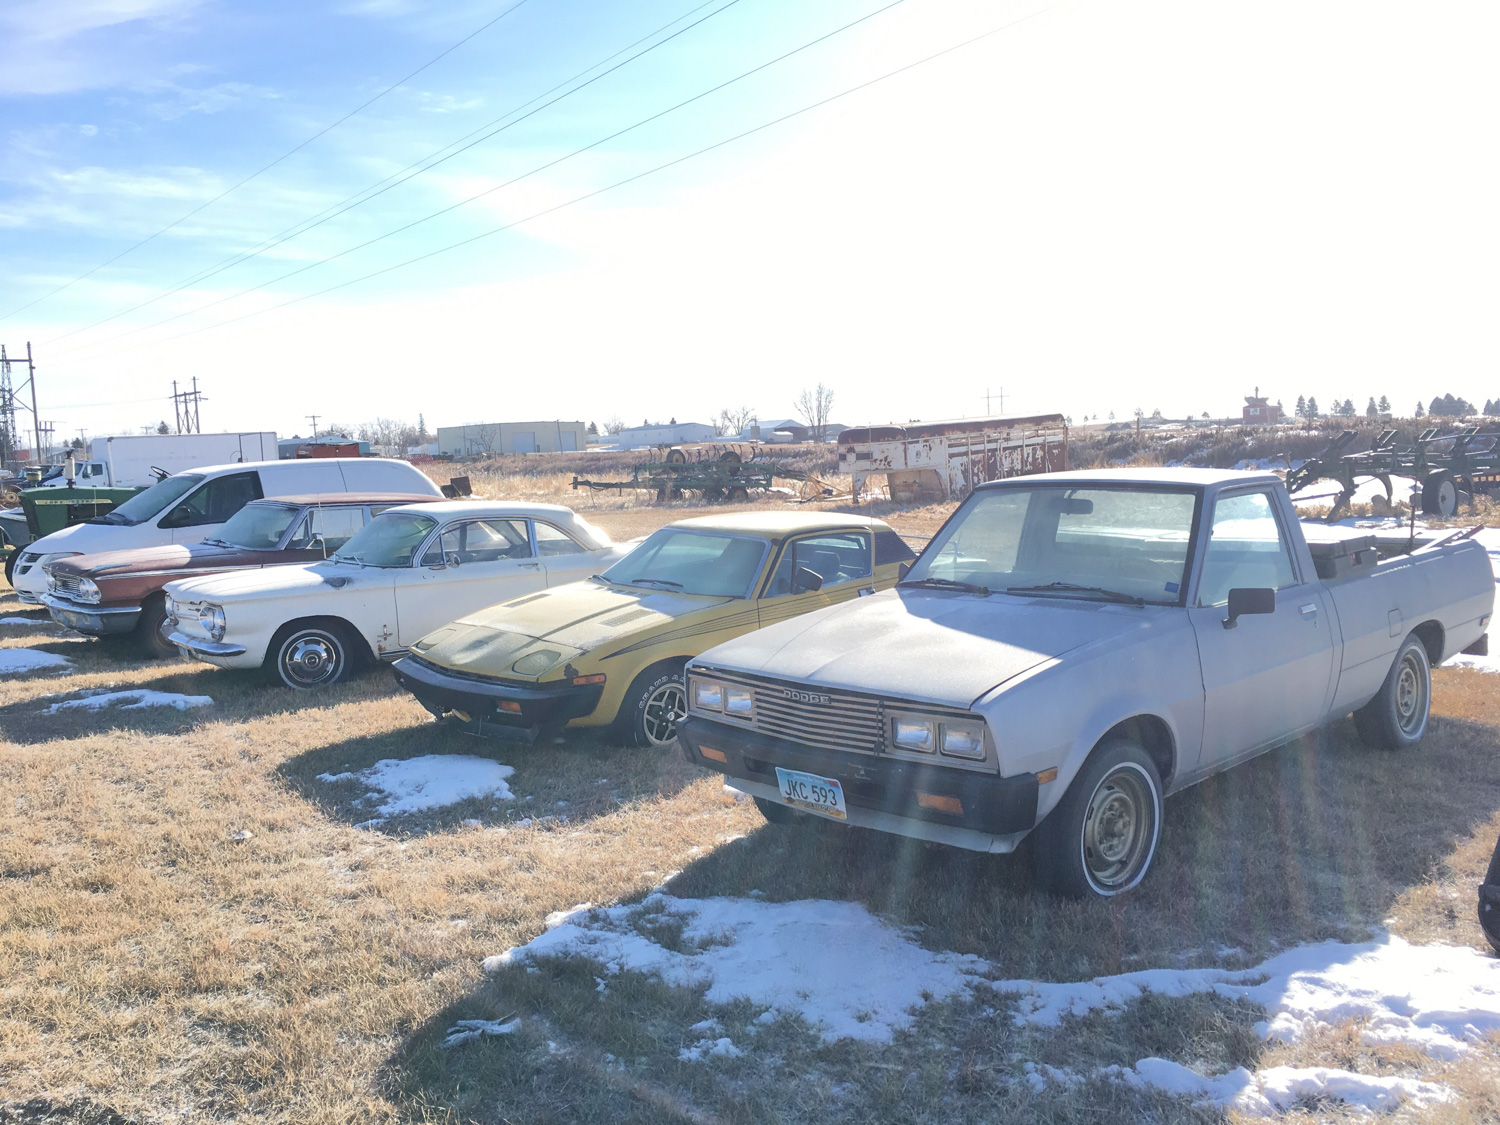 snow covered derelict cars in field